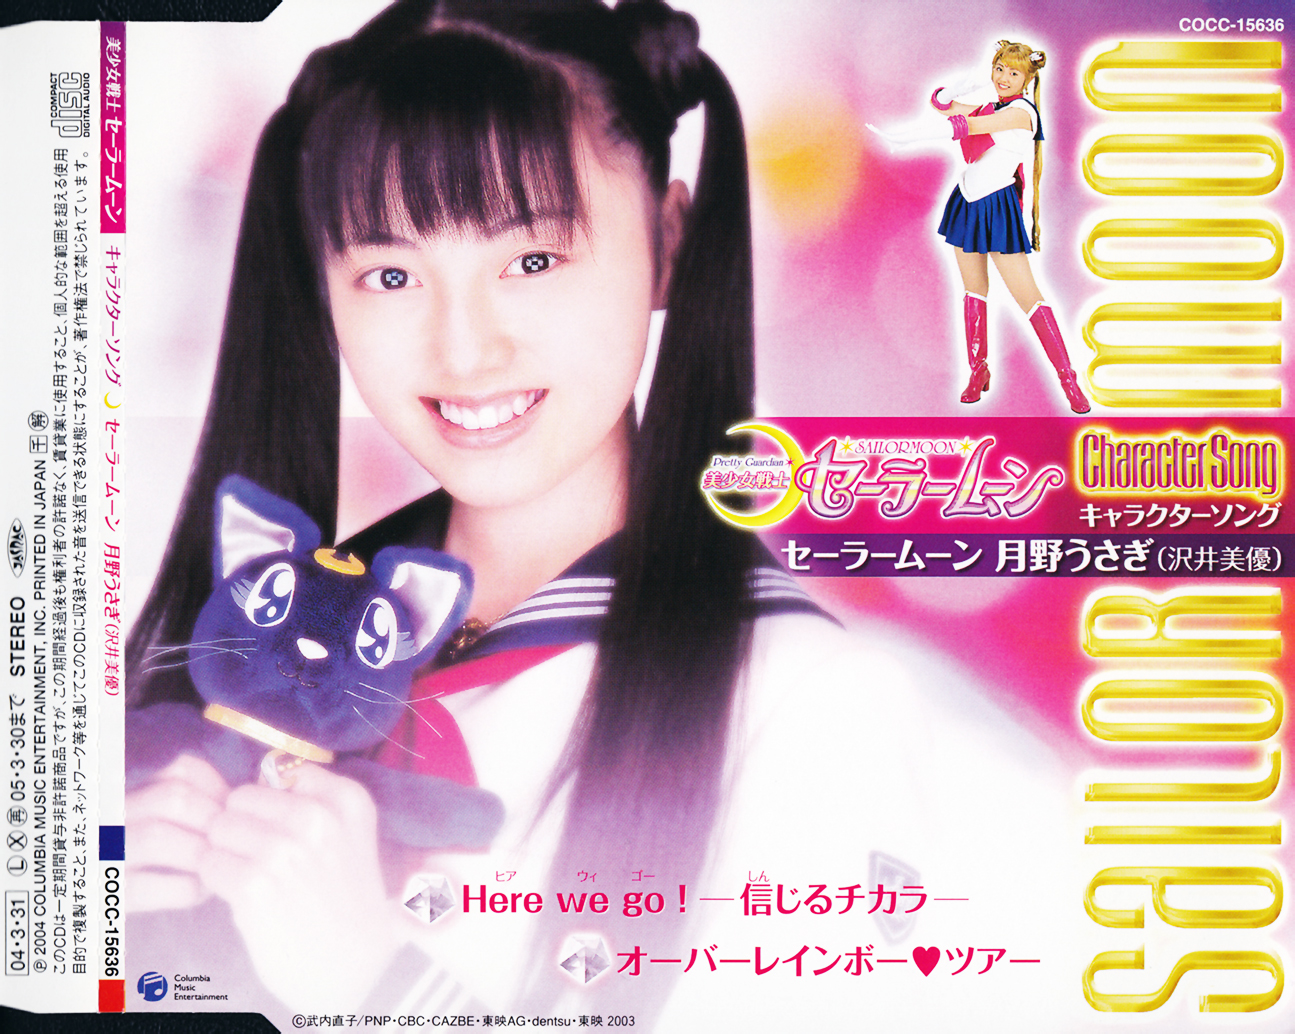 Pgsm_sailor_moon_01